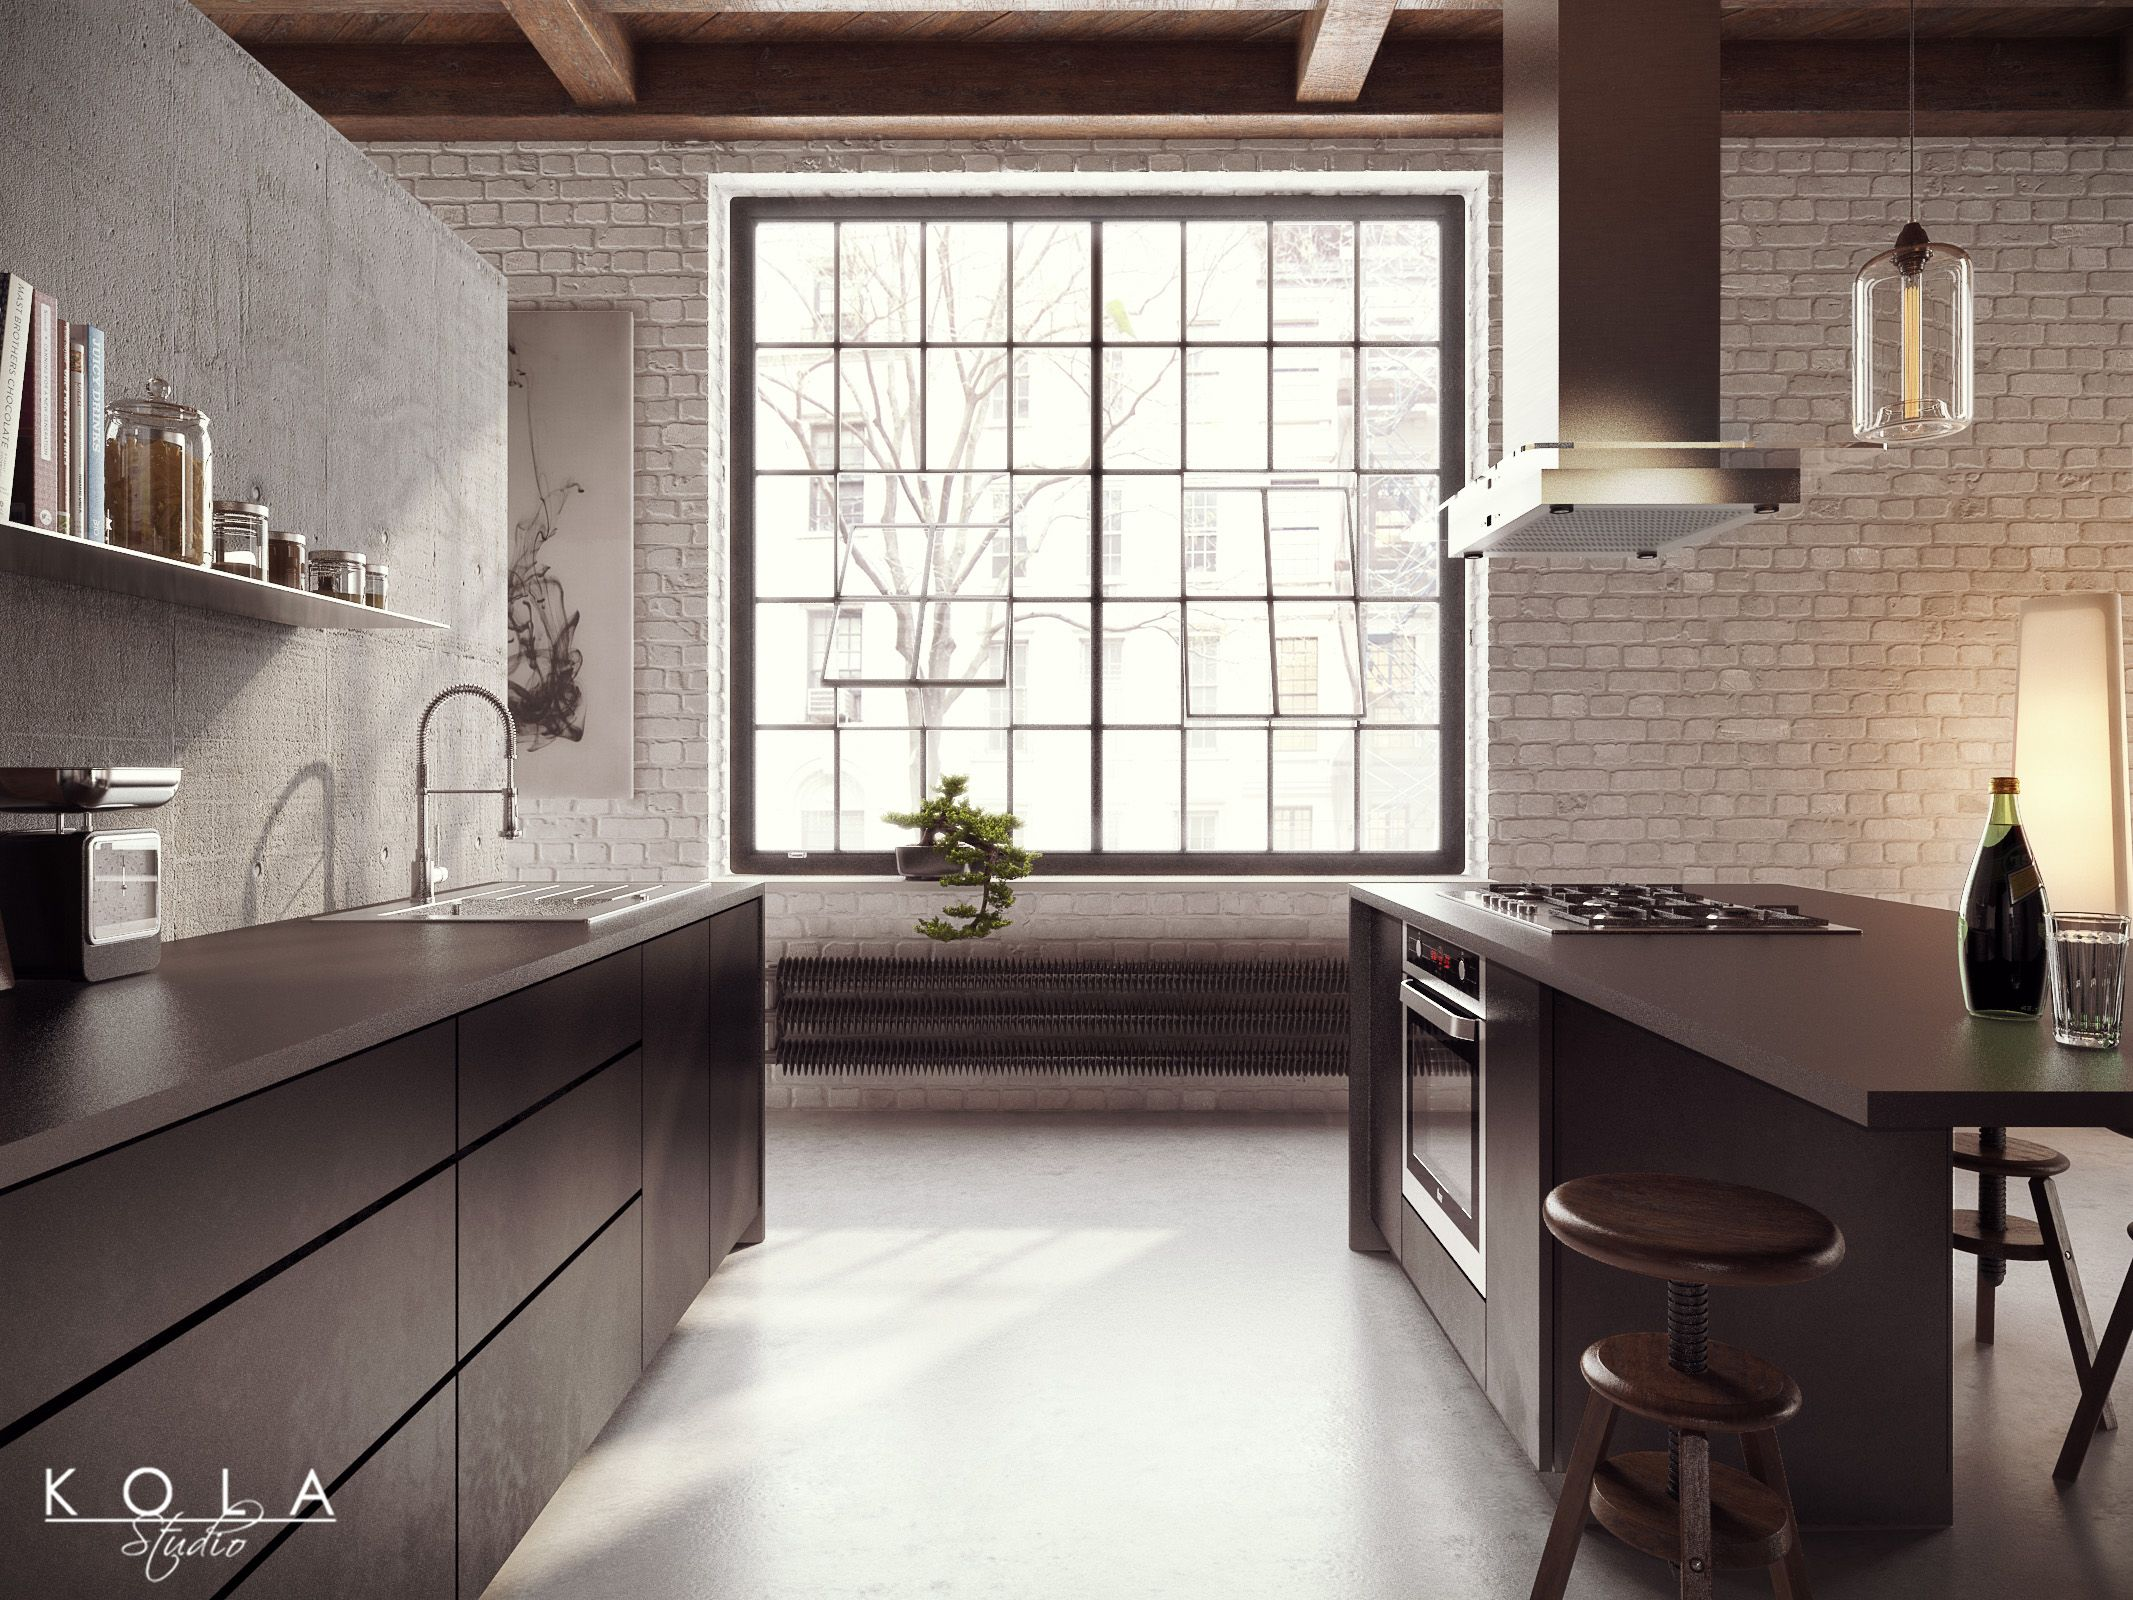 Concrete Floors Kitchen Loft Kitchen Visualization Design Kola Studio Tags Wooden